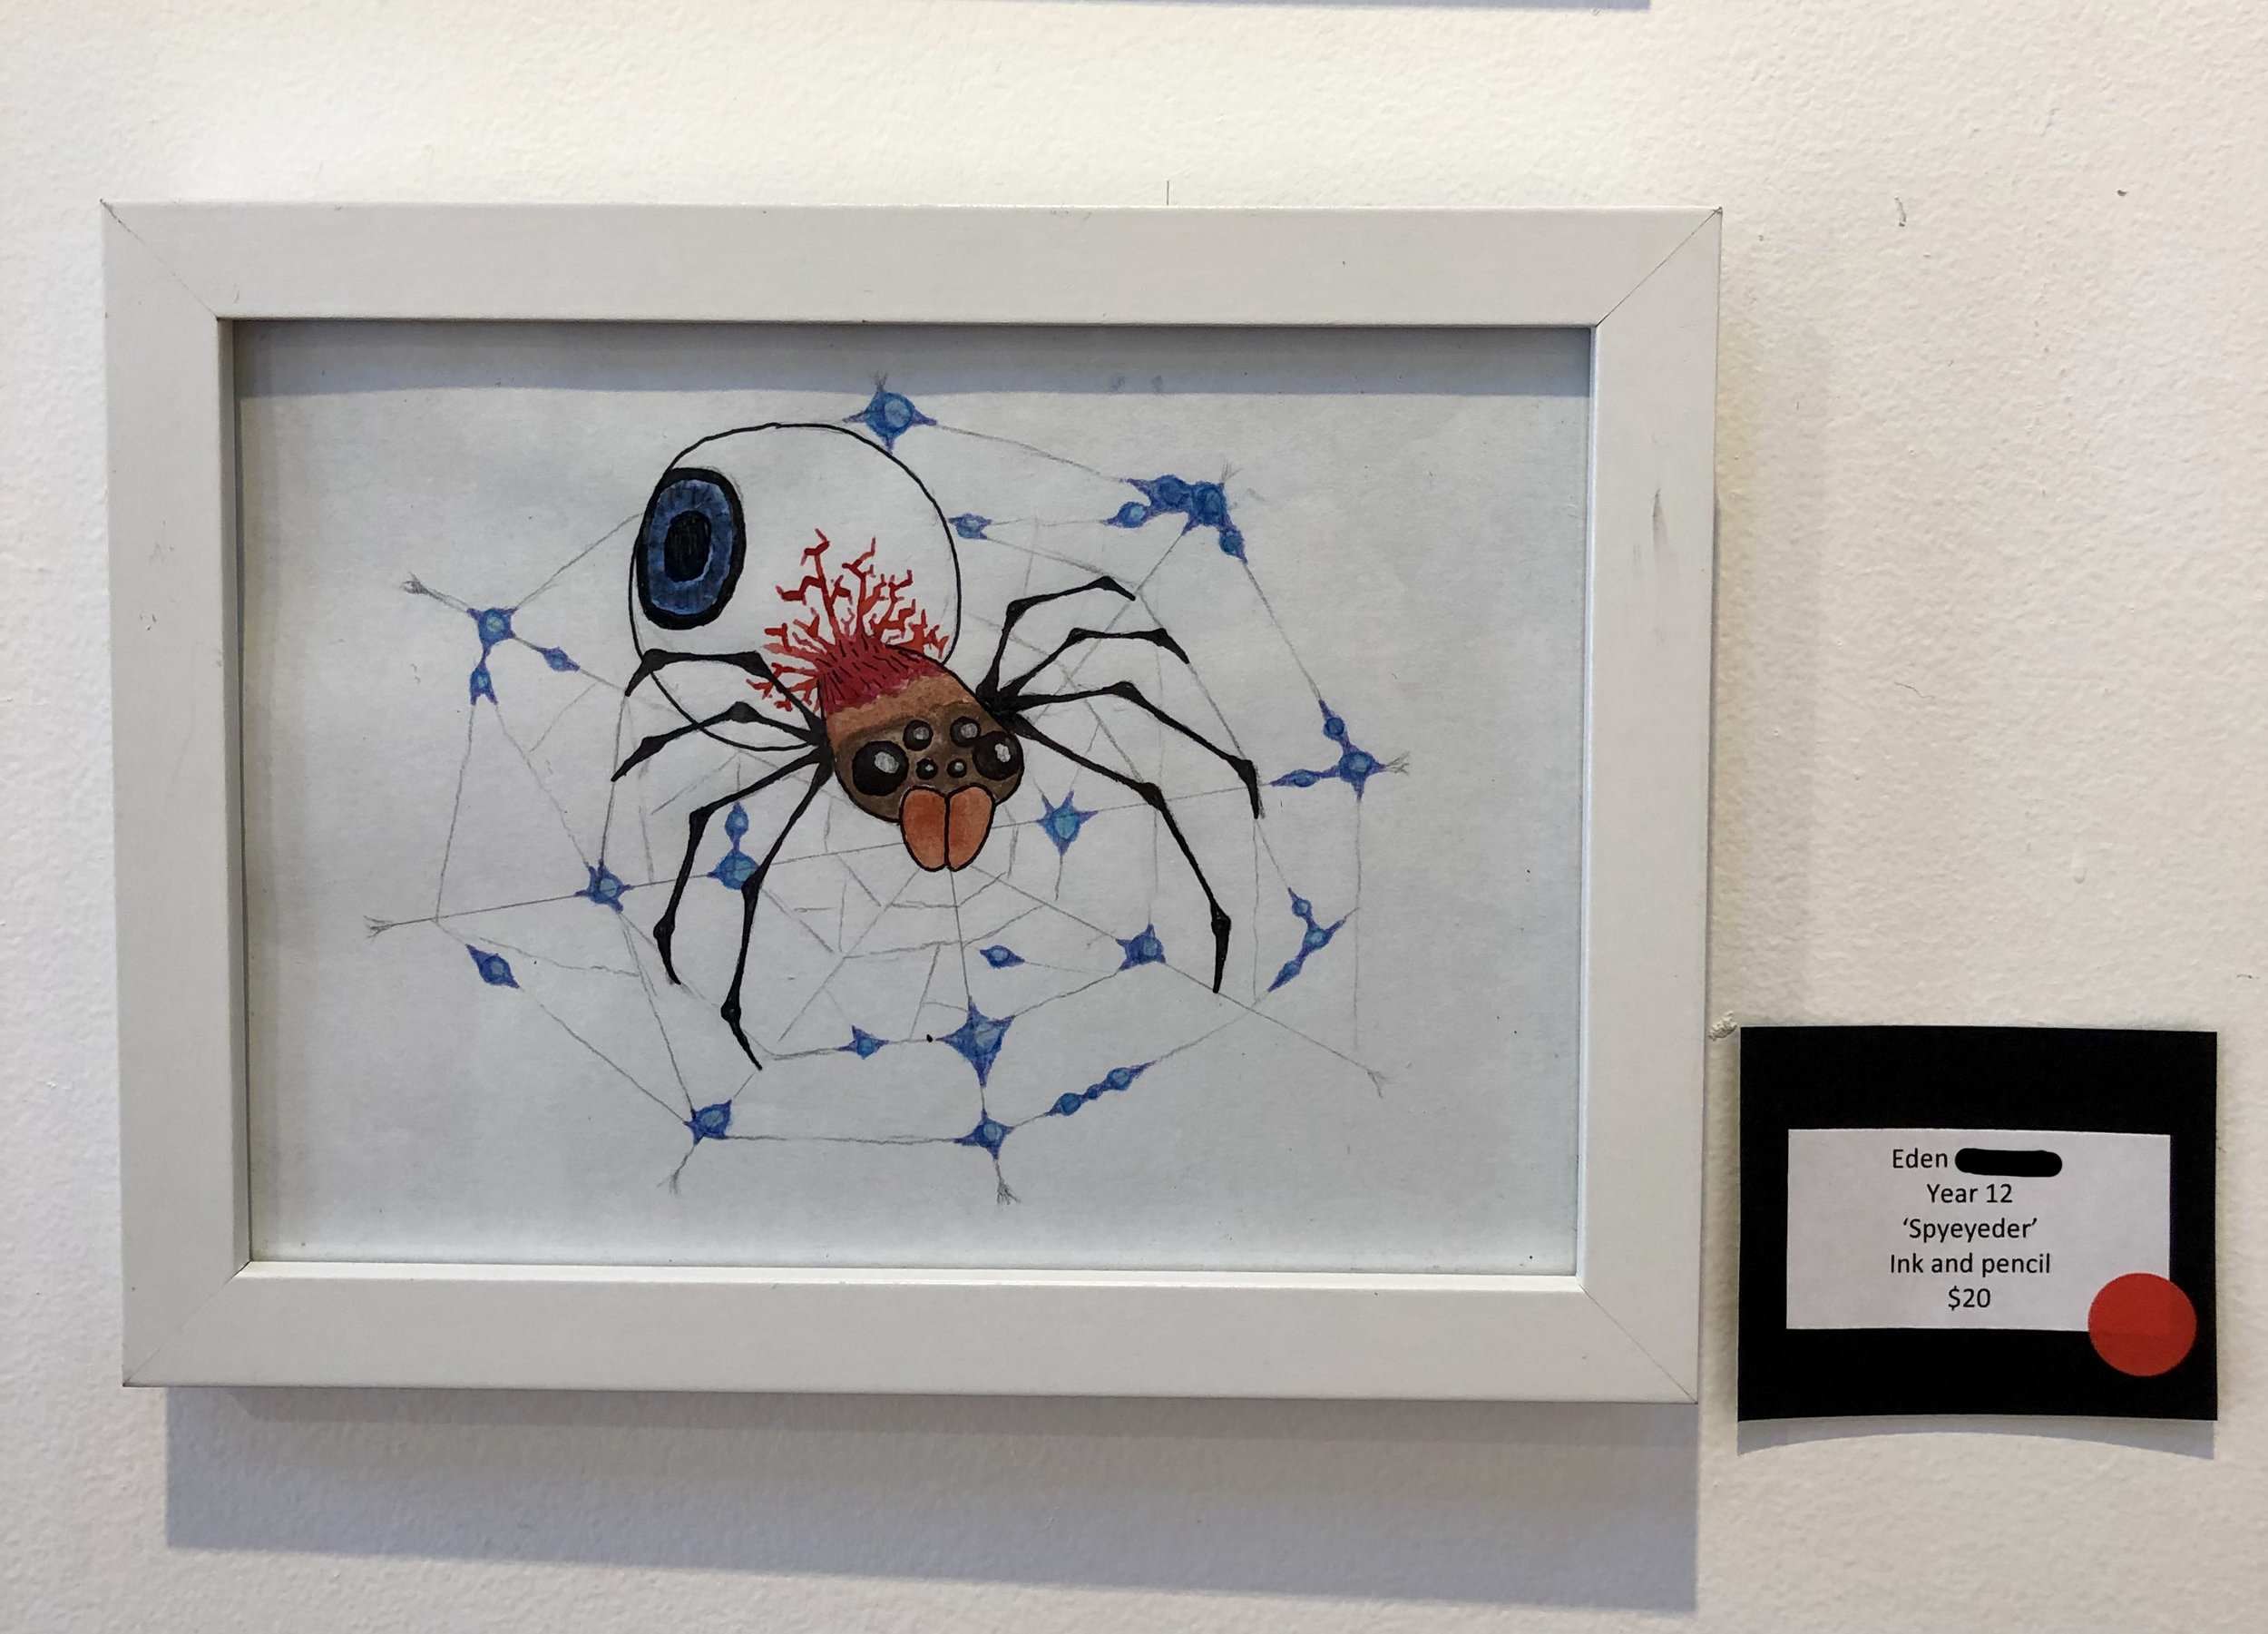 """Spyeyeder"" by Eden (Year 12)"